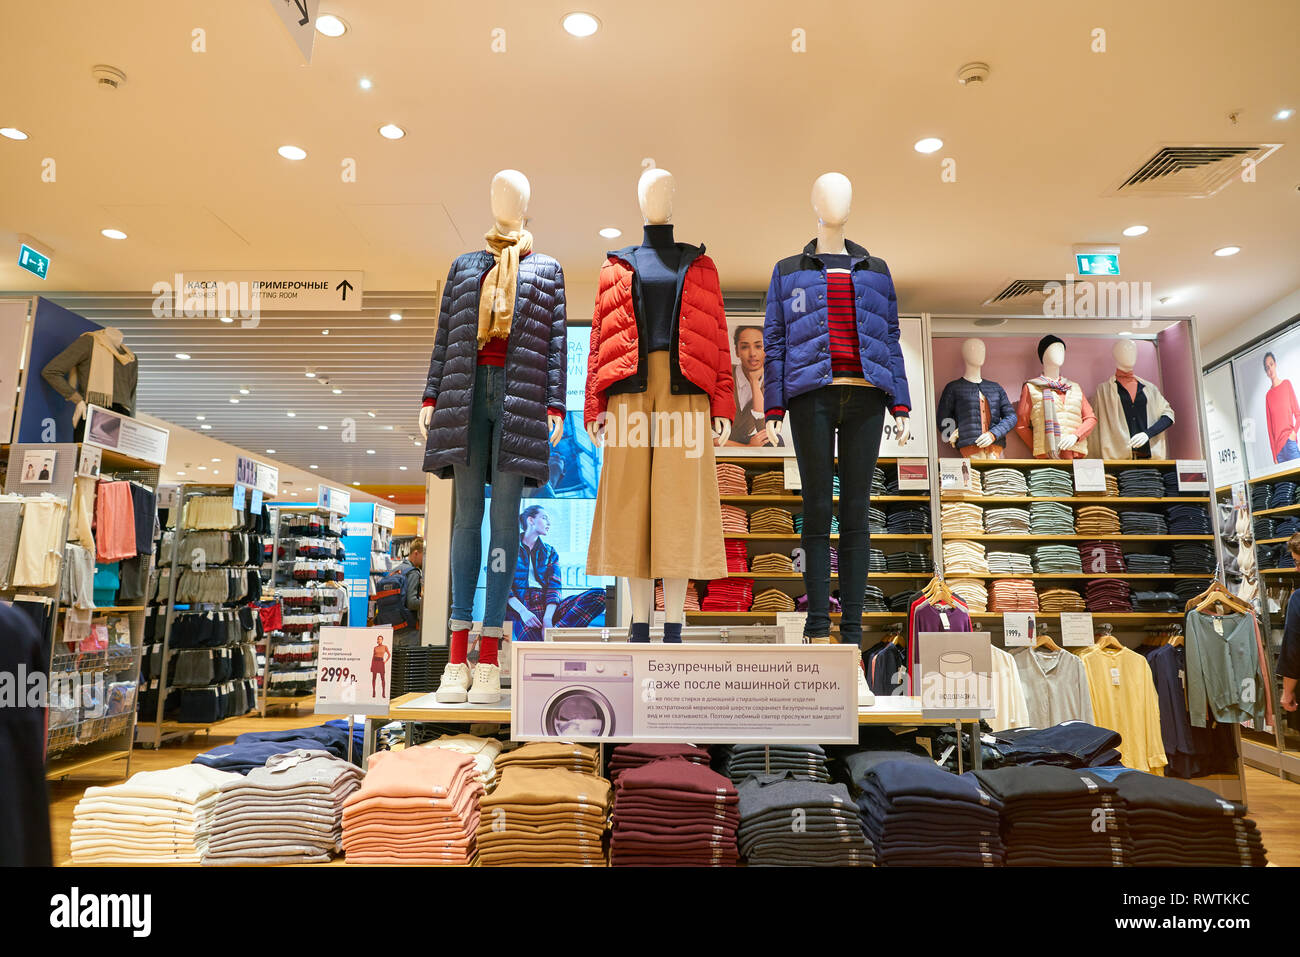 b2ee53efe9 MOSCOW, RUSSIA - CIRCA SEPTEMBER, 2018: interior shot of Uniqlo store in  Moscow. Uniqlo Co. Ltd is a Japanese casual wear designer, manufacturer and  r